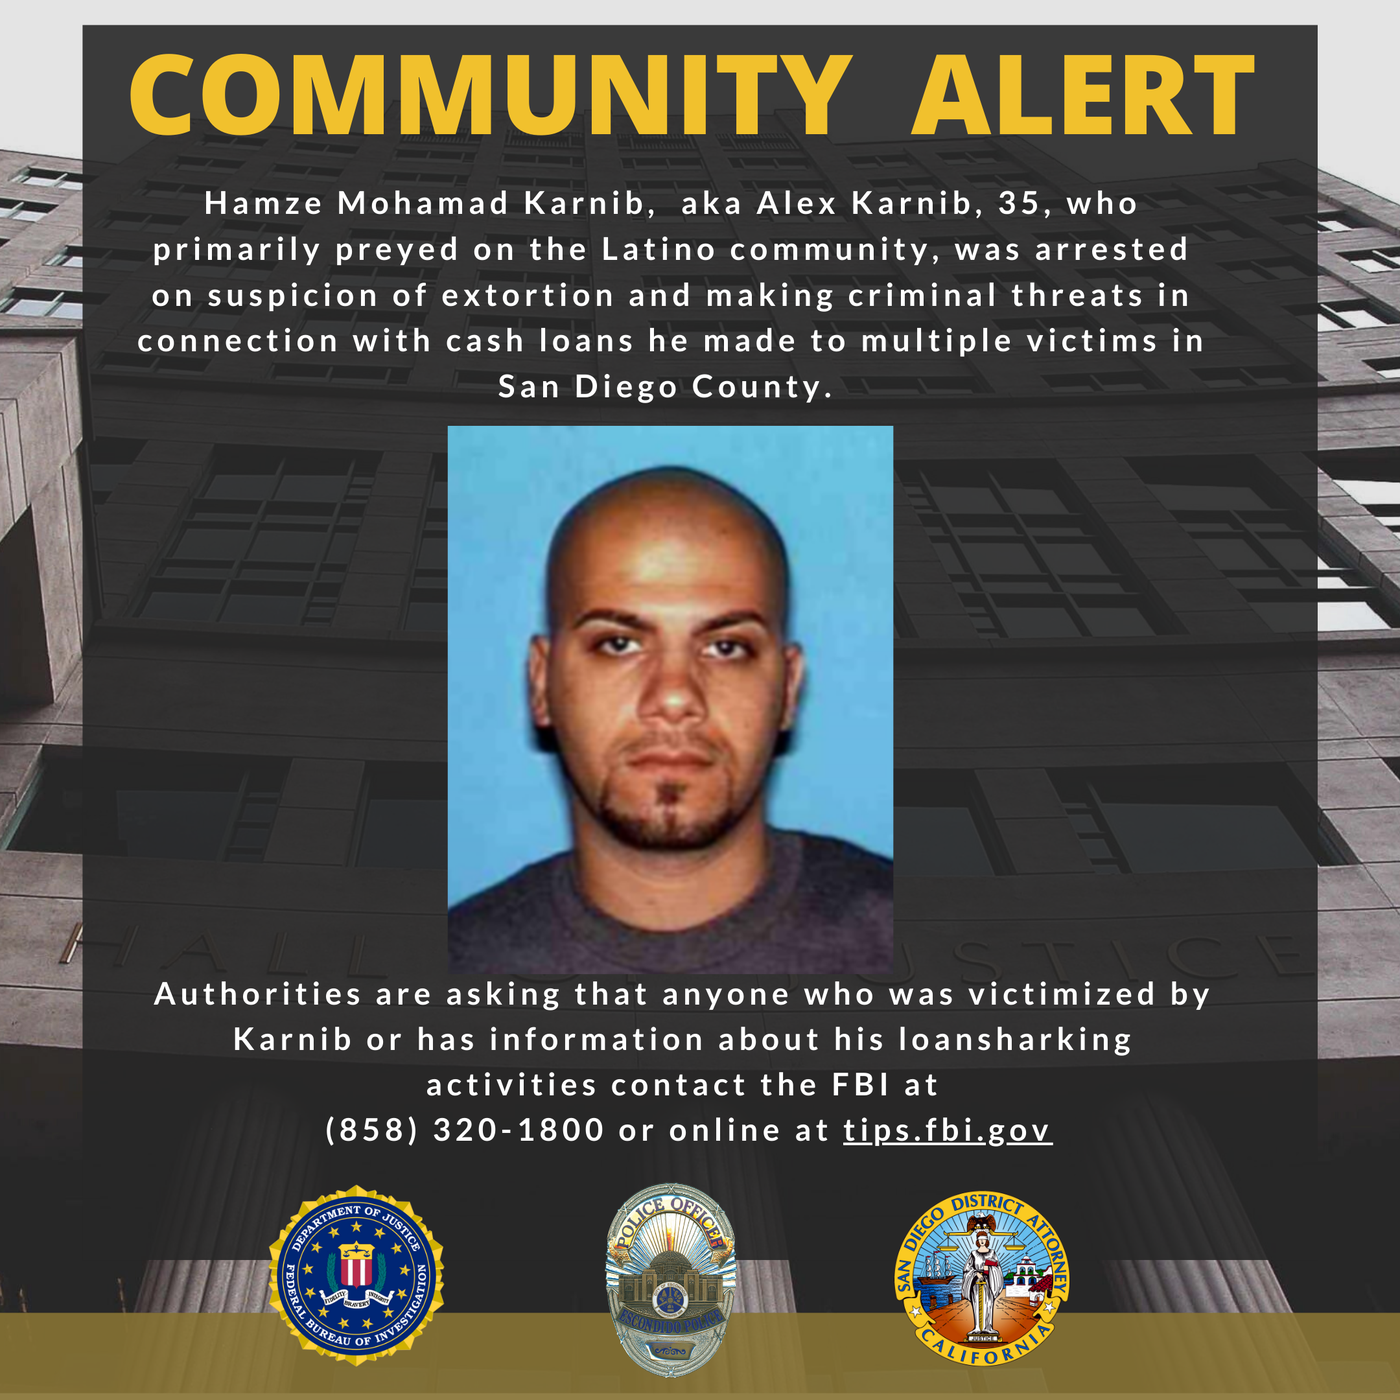 A community alert issued by FBI San Diego seeking information from victims of Alex Karnib.